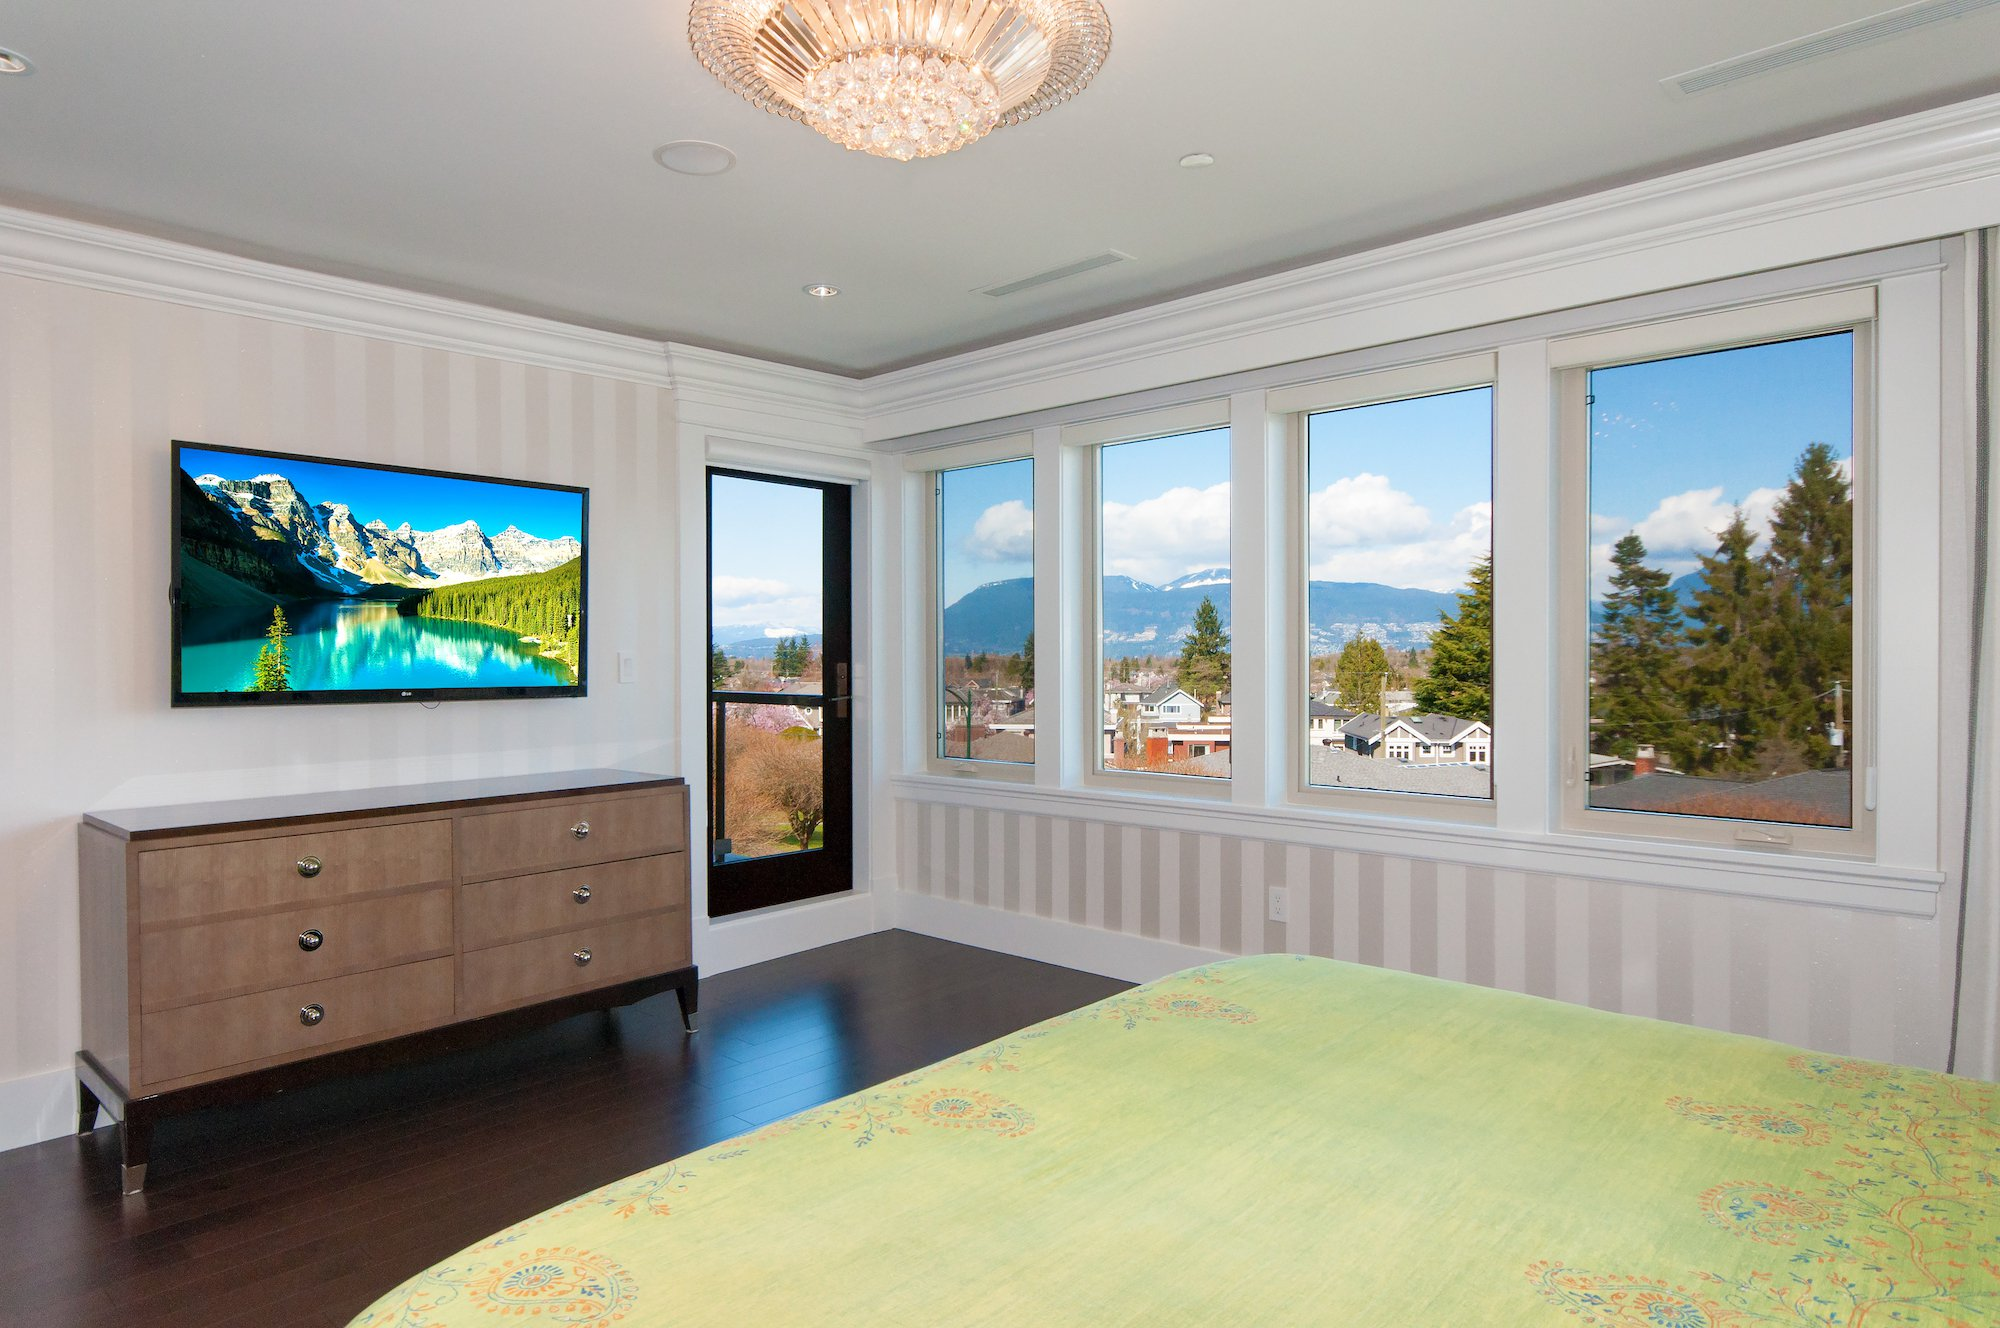 Photo 13: Photos: 2588 Edgar Crescent in Vancouver: Quilchena House for sale (Vancouver West)